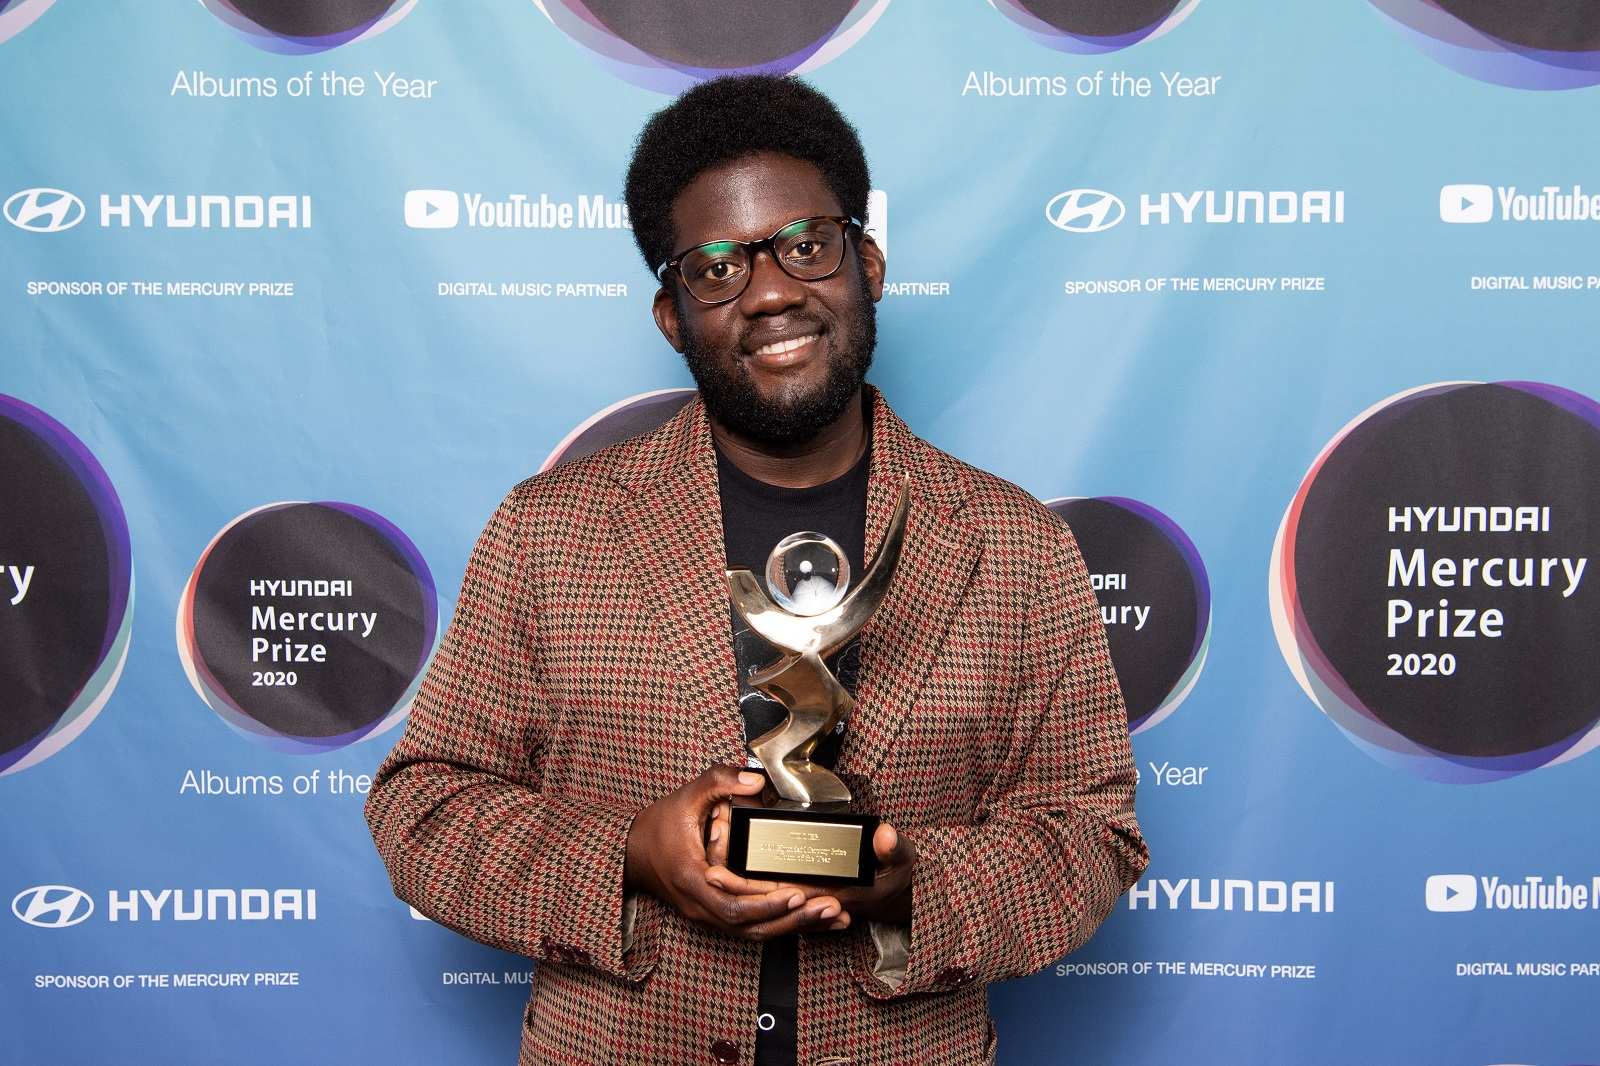 Michael wins the 2020 Hyundai Mercury Prize for Album of the Year